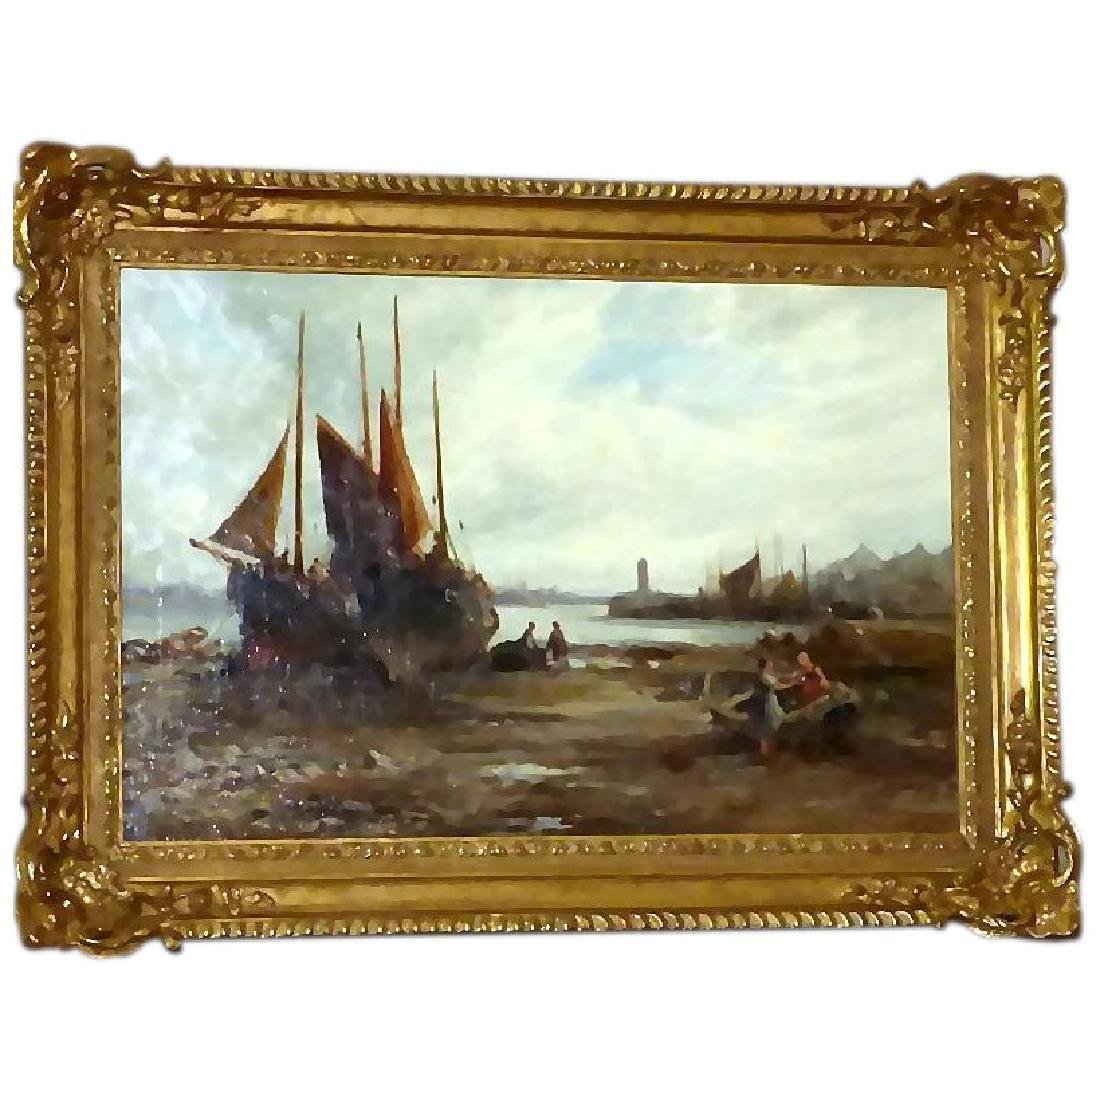 Antique 19th Century Shore Scene with Beached Fishing